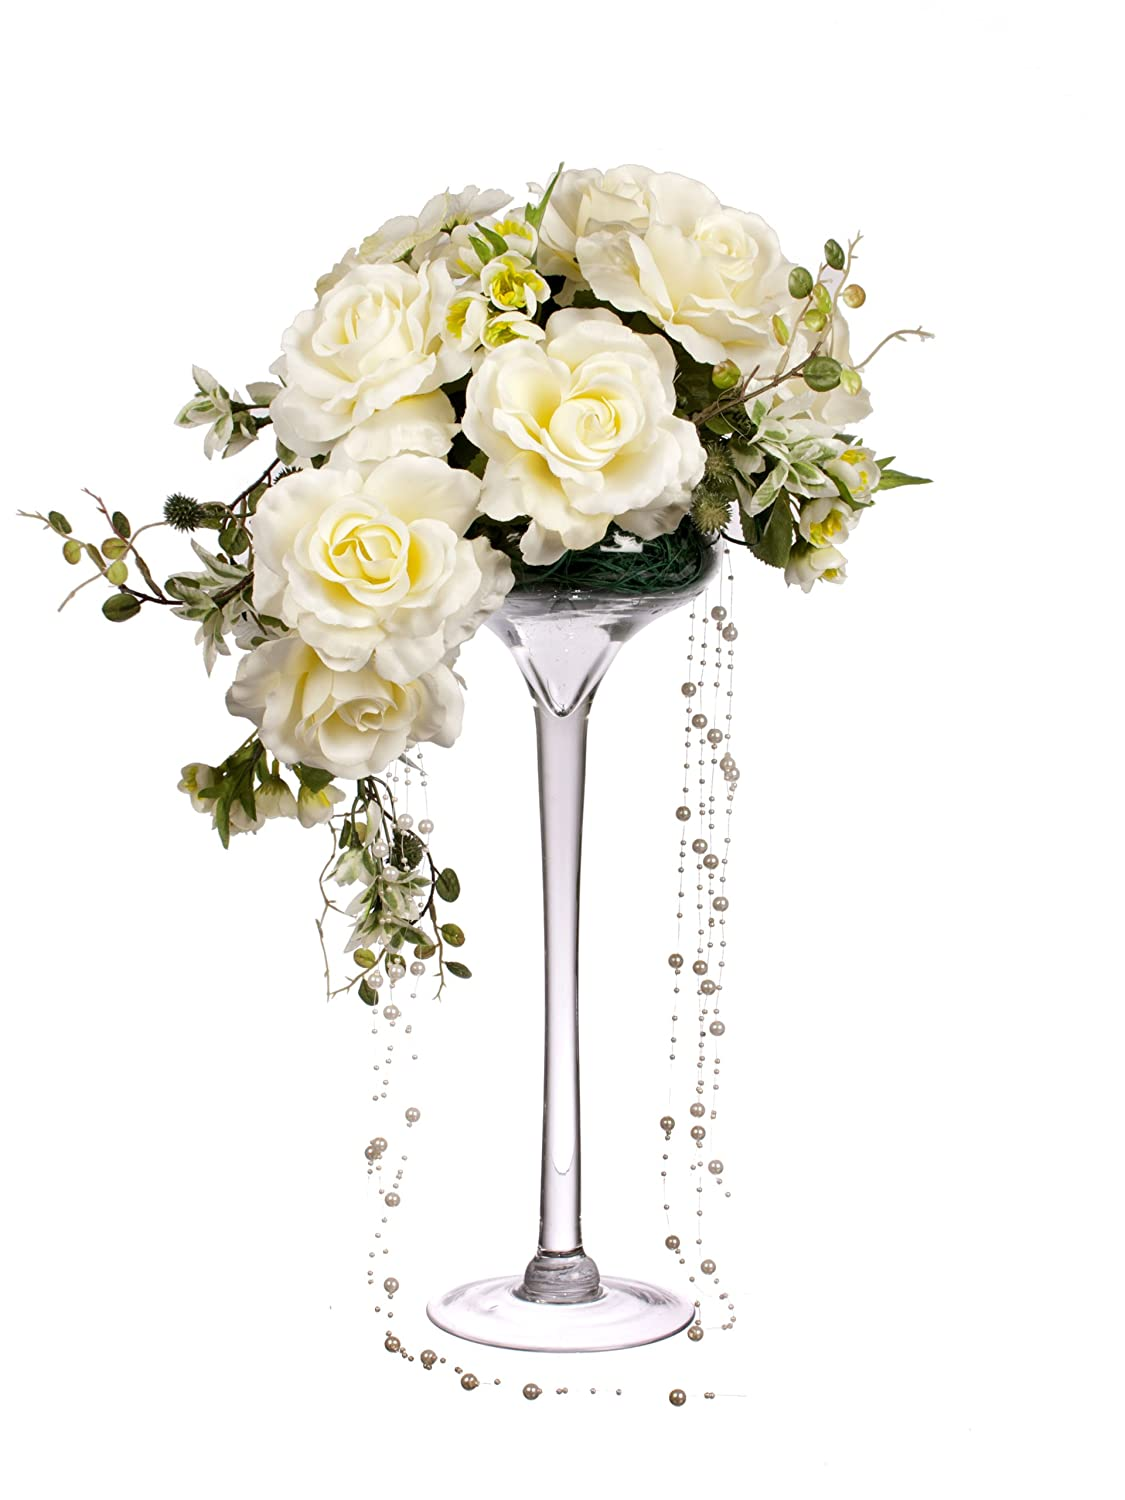 Closer2nature 55cm trailing rose and draping pearl bead display in closer2nature 55cm trailing rose and draping pearl bead display in tall martini glass vase white amazon garden outdoors reviewsmspy